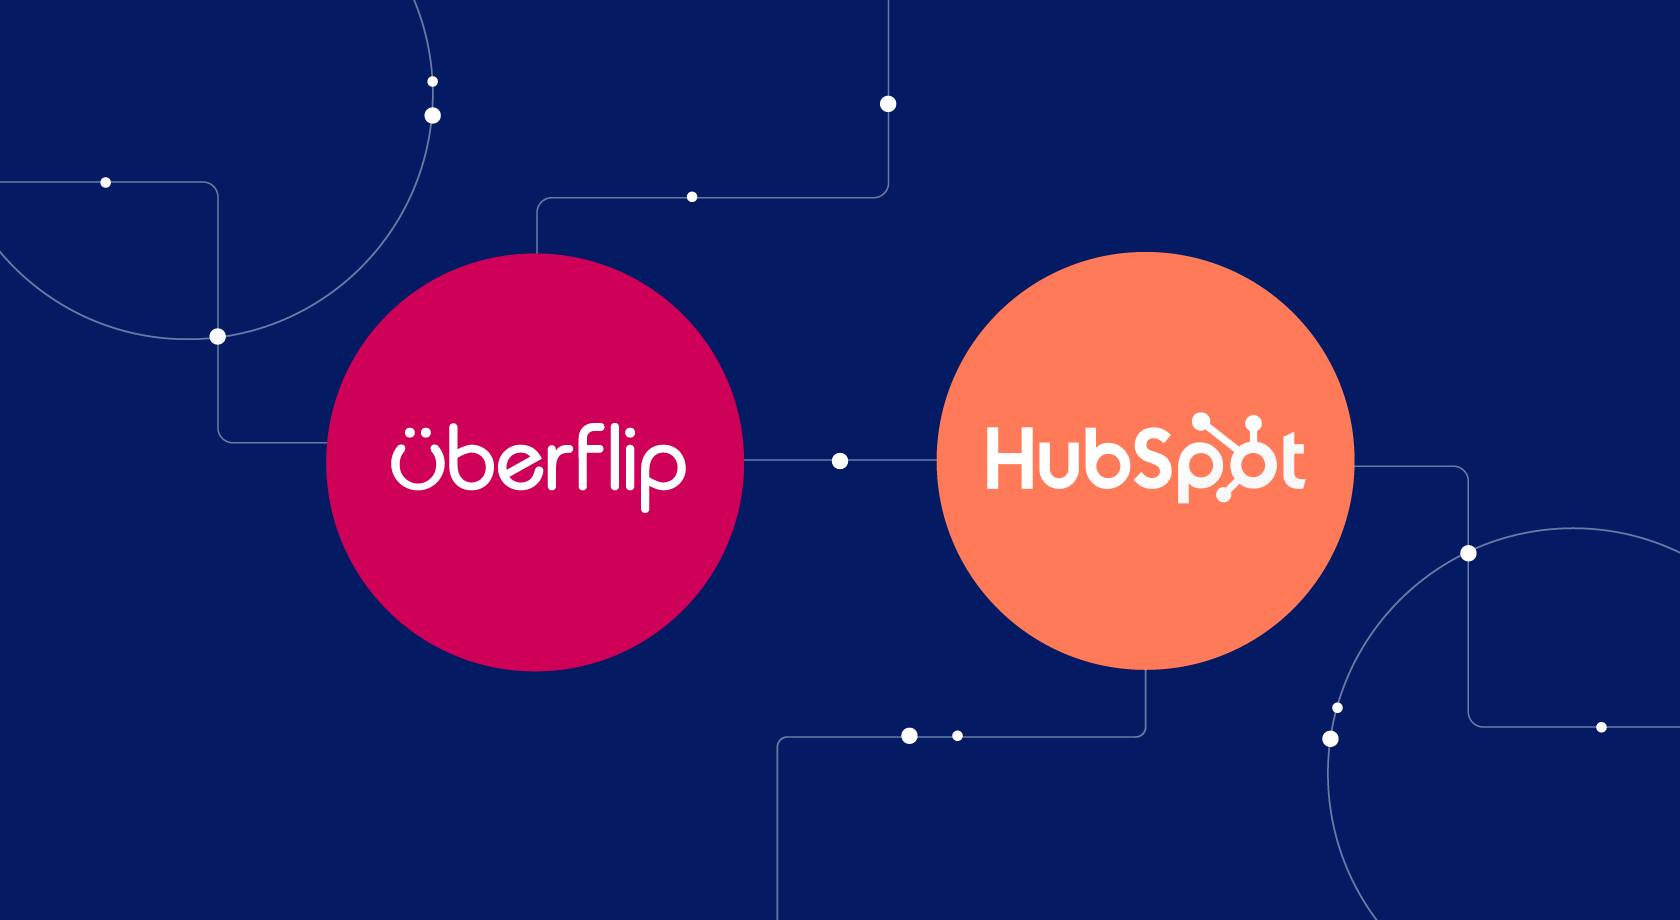 Uberflip and HubSpot logos in circles alongside eachother